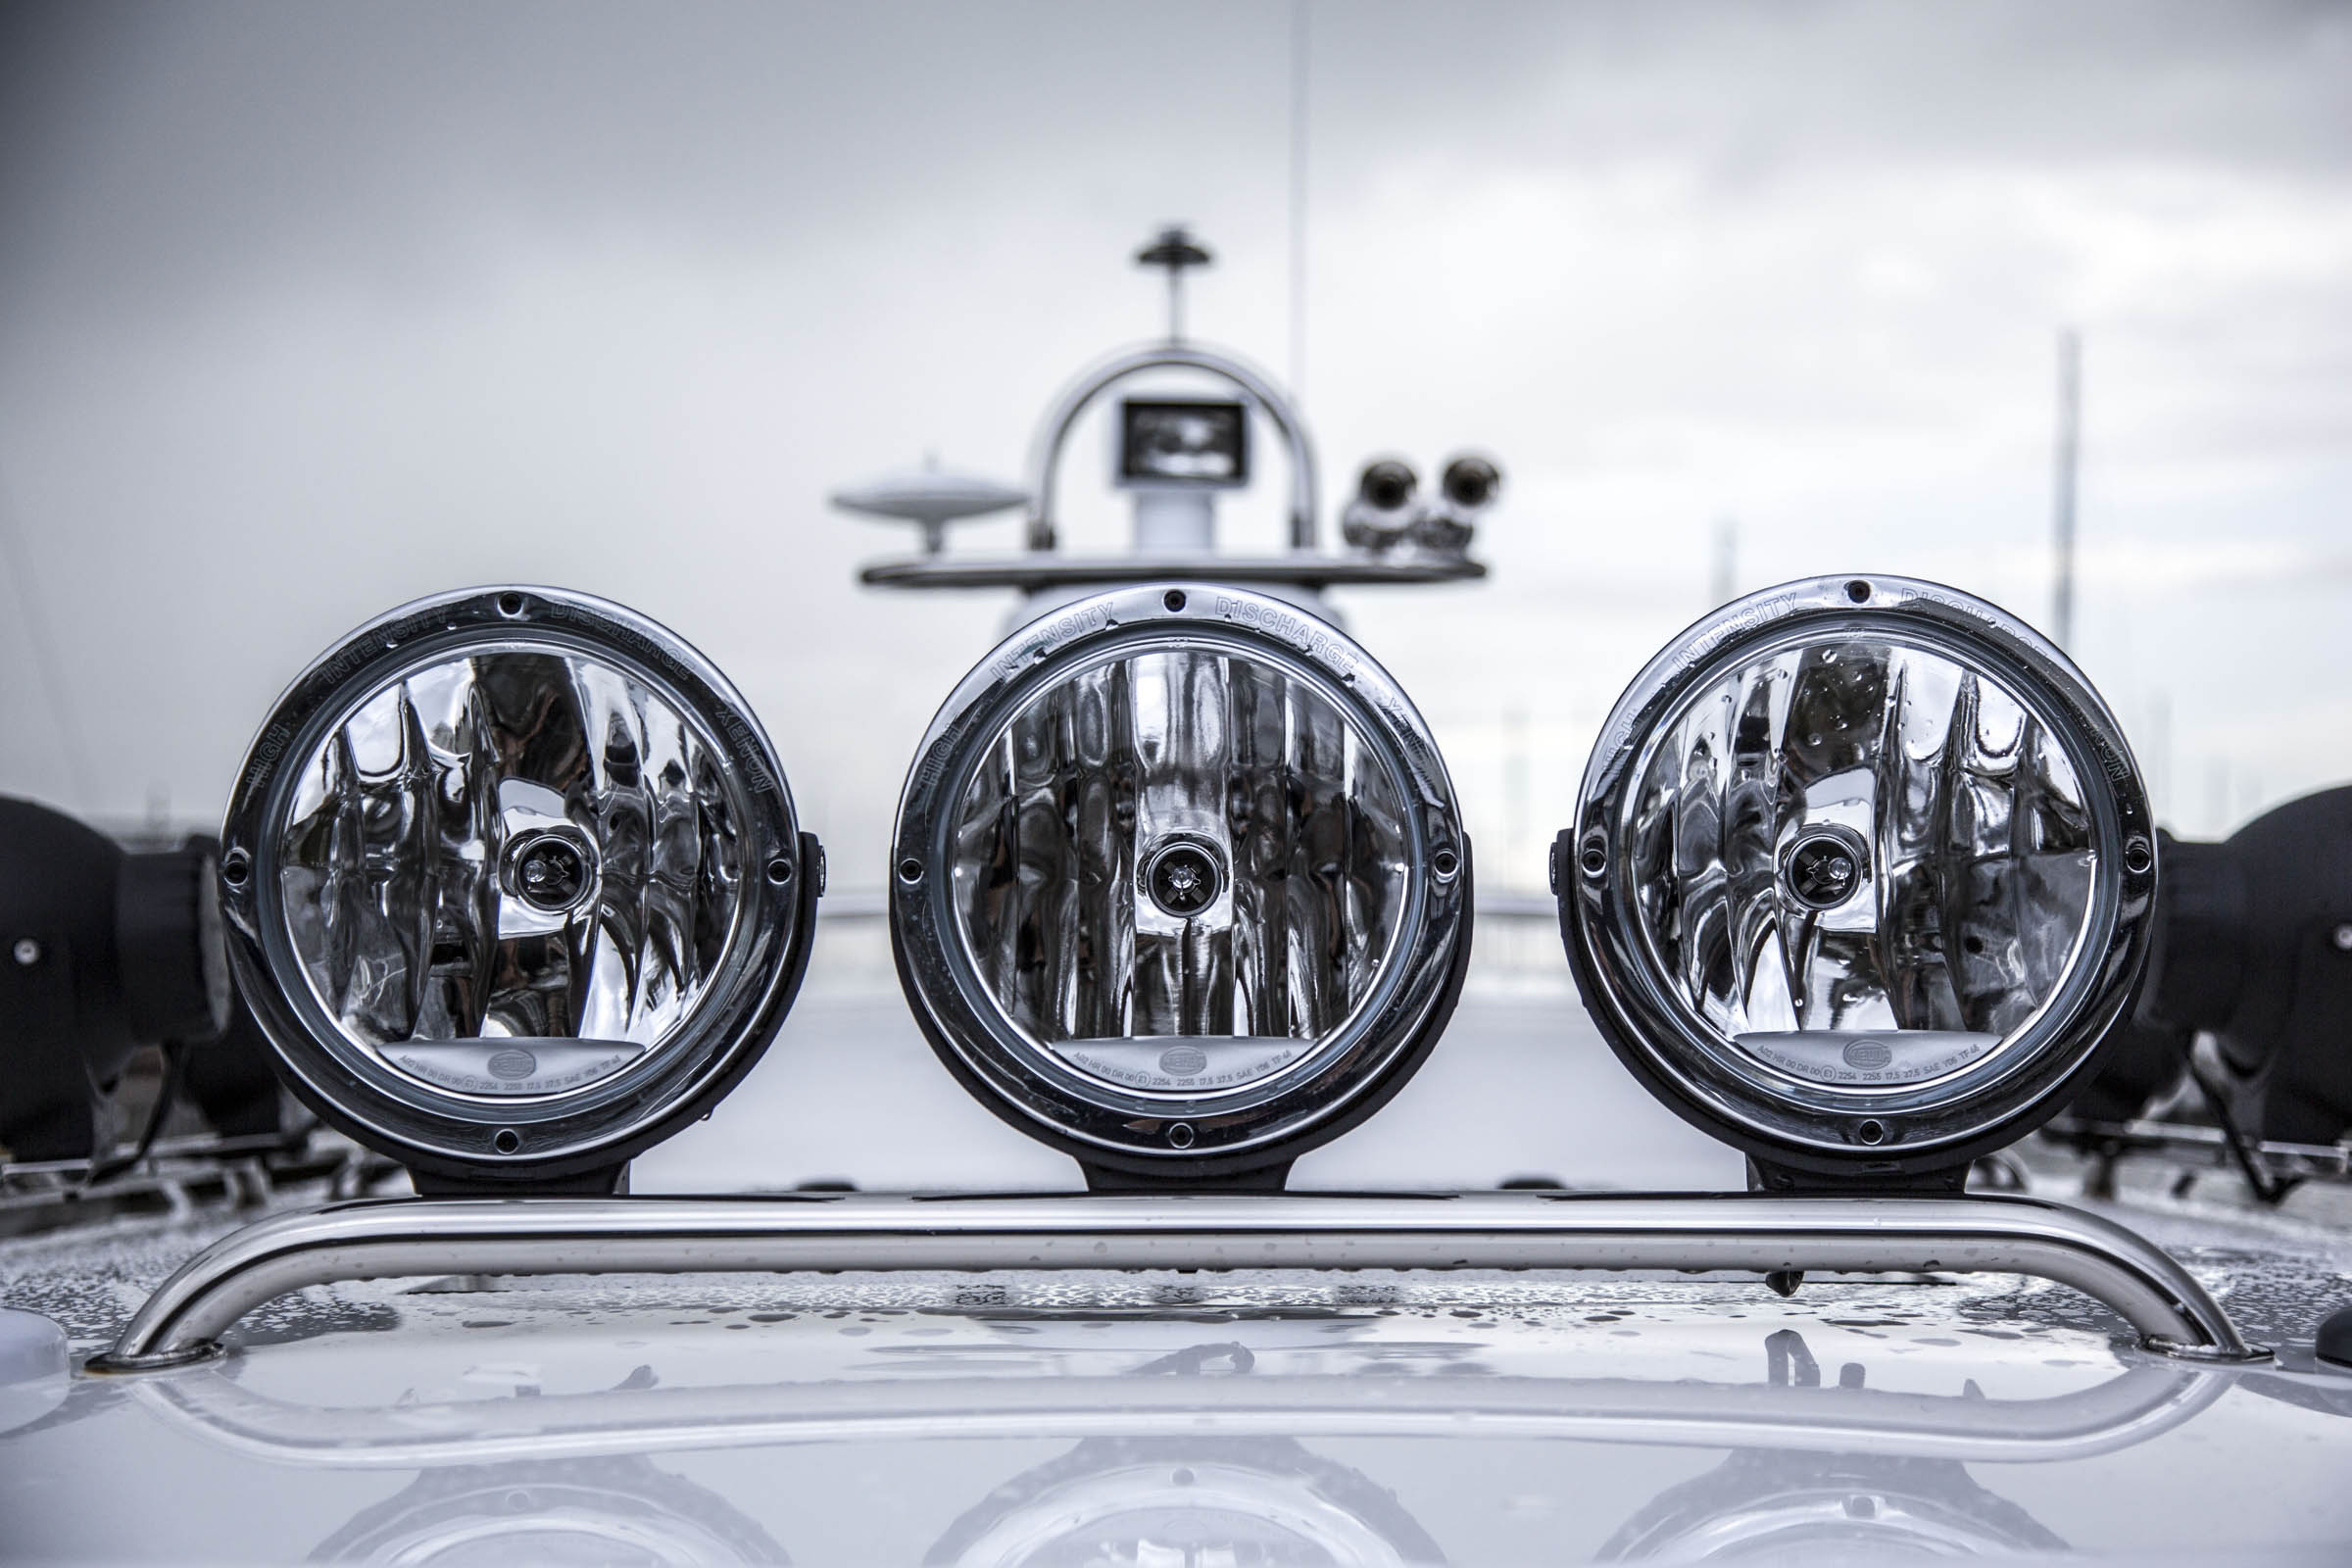 Lights on a Paragon Boat